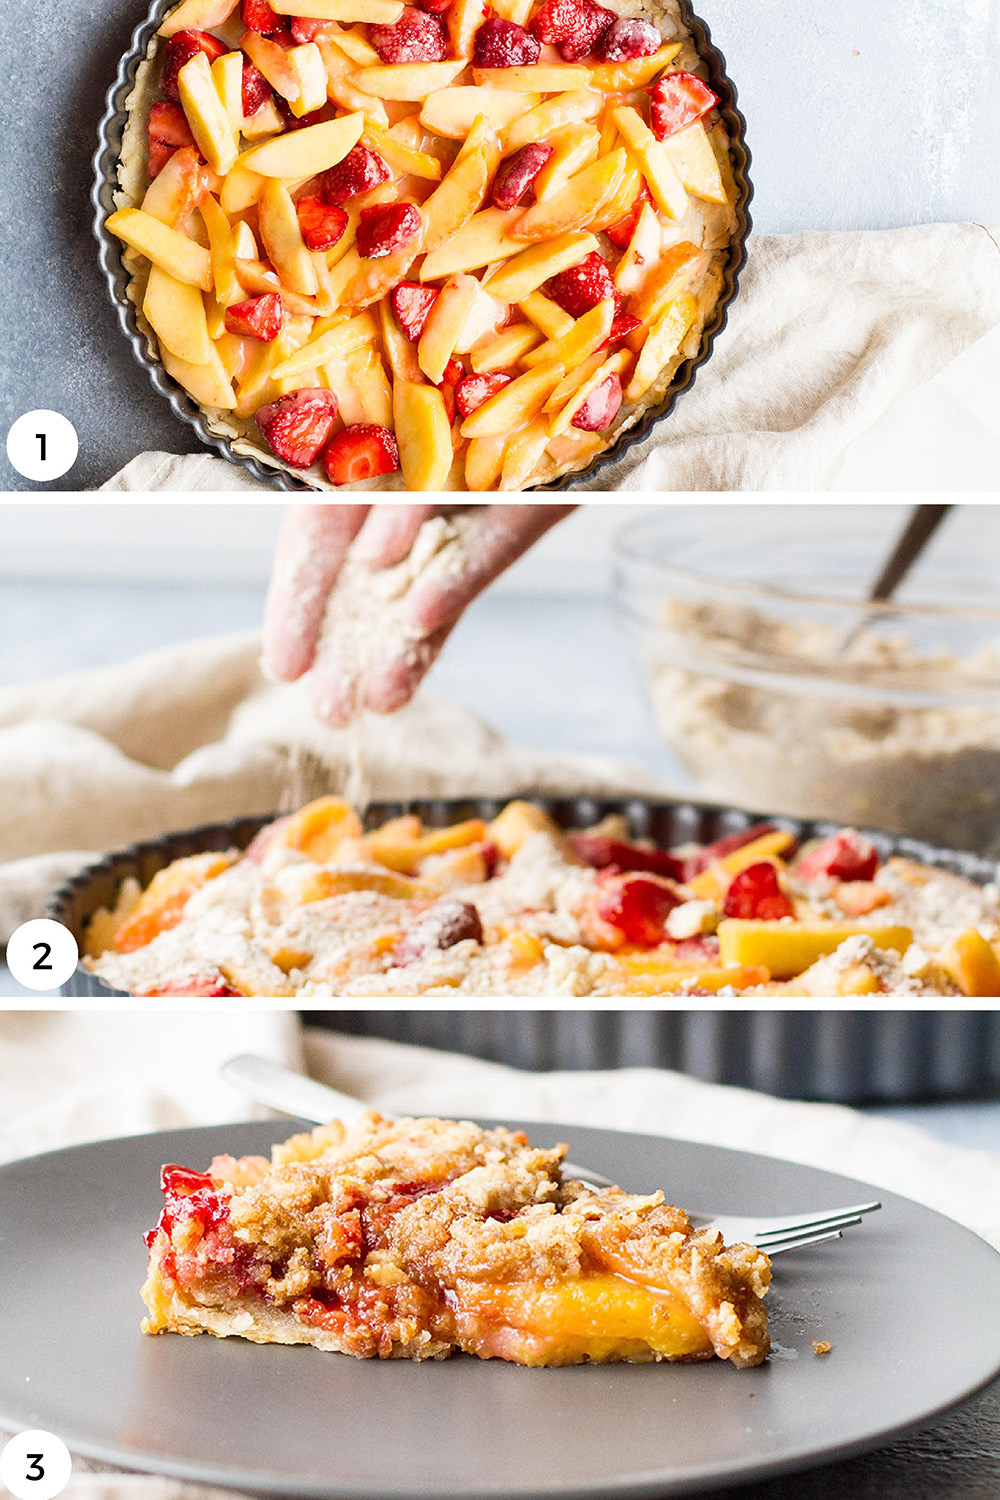 Steps to make peach pie with crumble top.